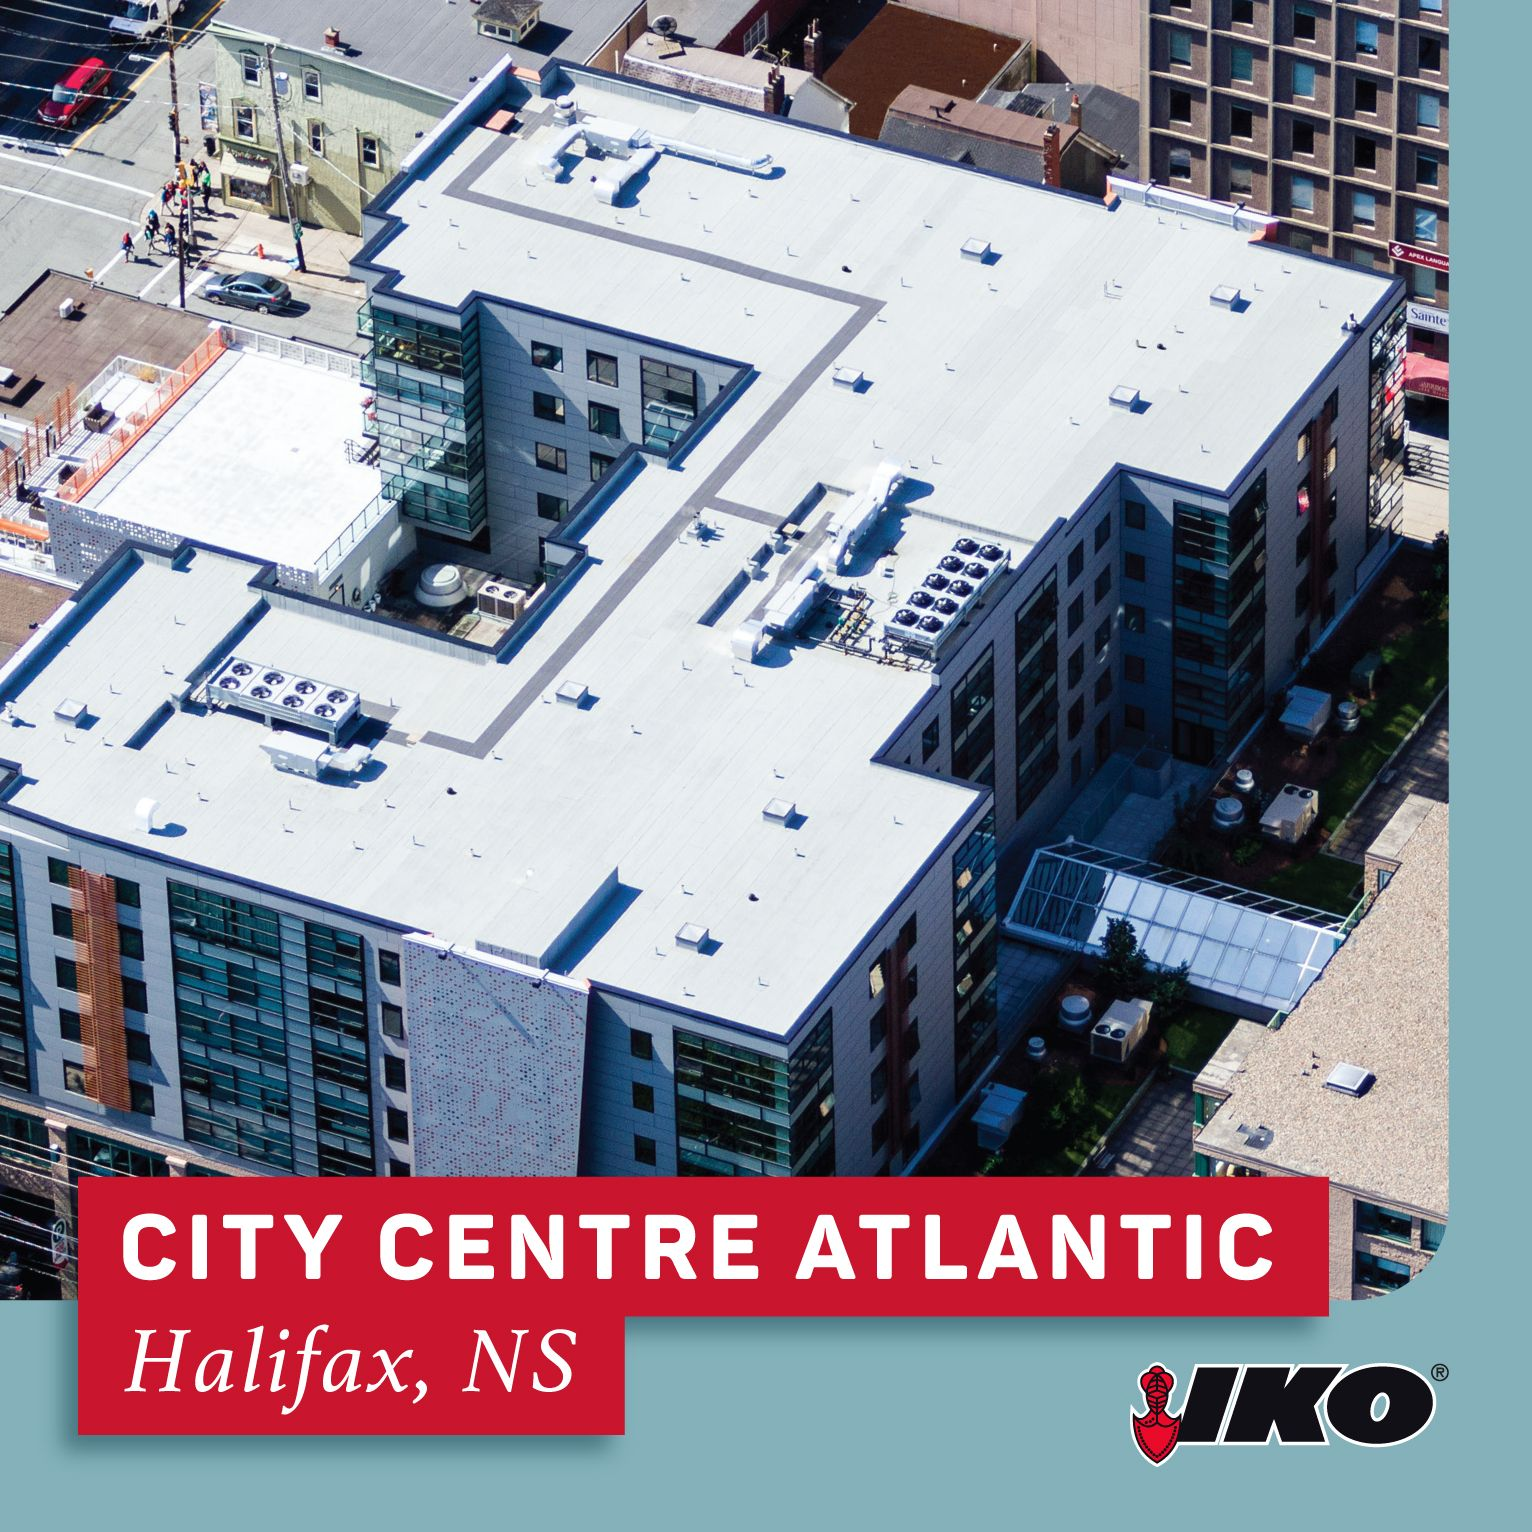 City Centre Atlantic Iko Commercial Roofing Project Profile Commercial Roofing Roofing Systems Roofing